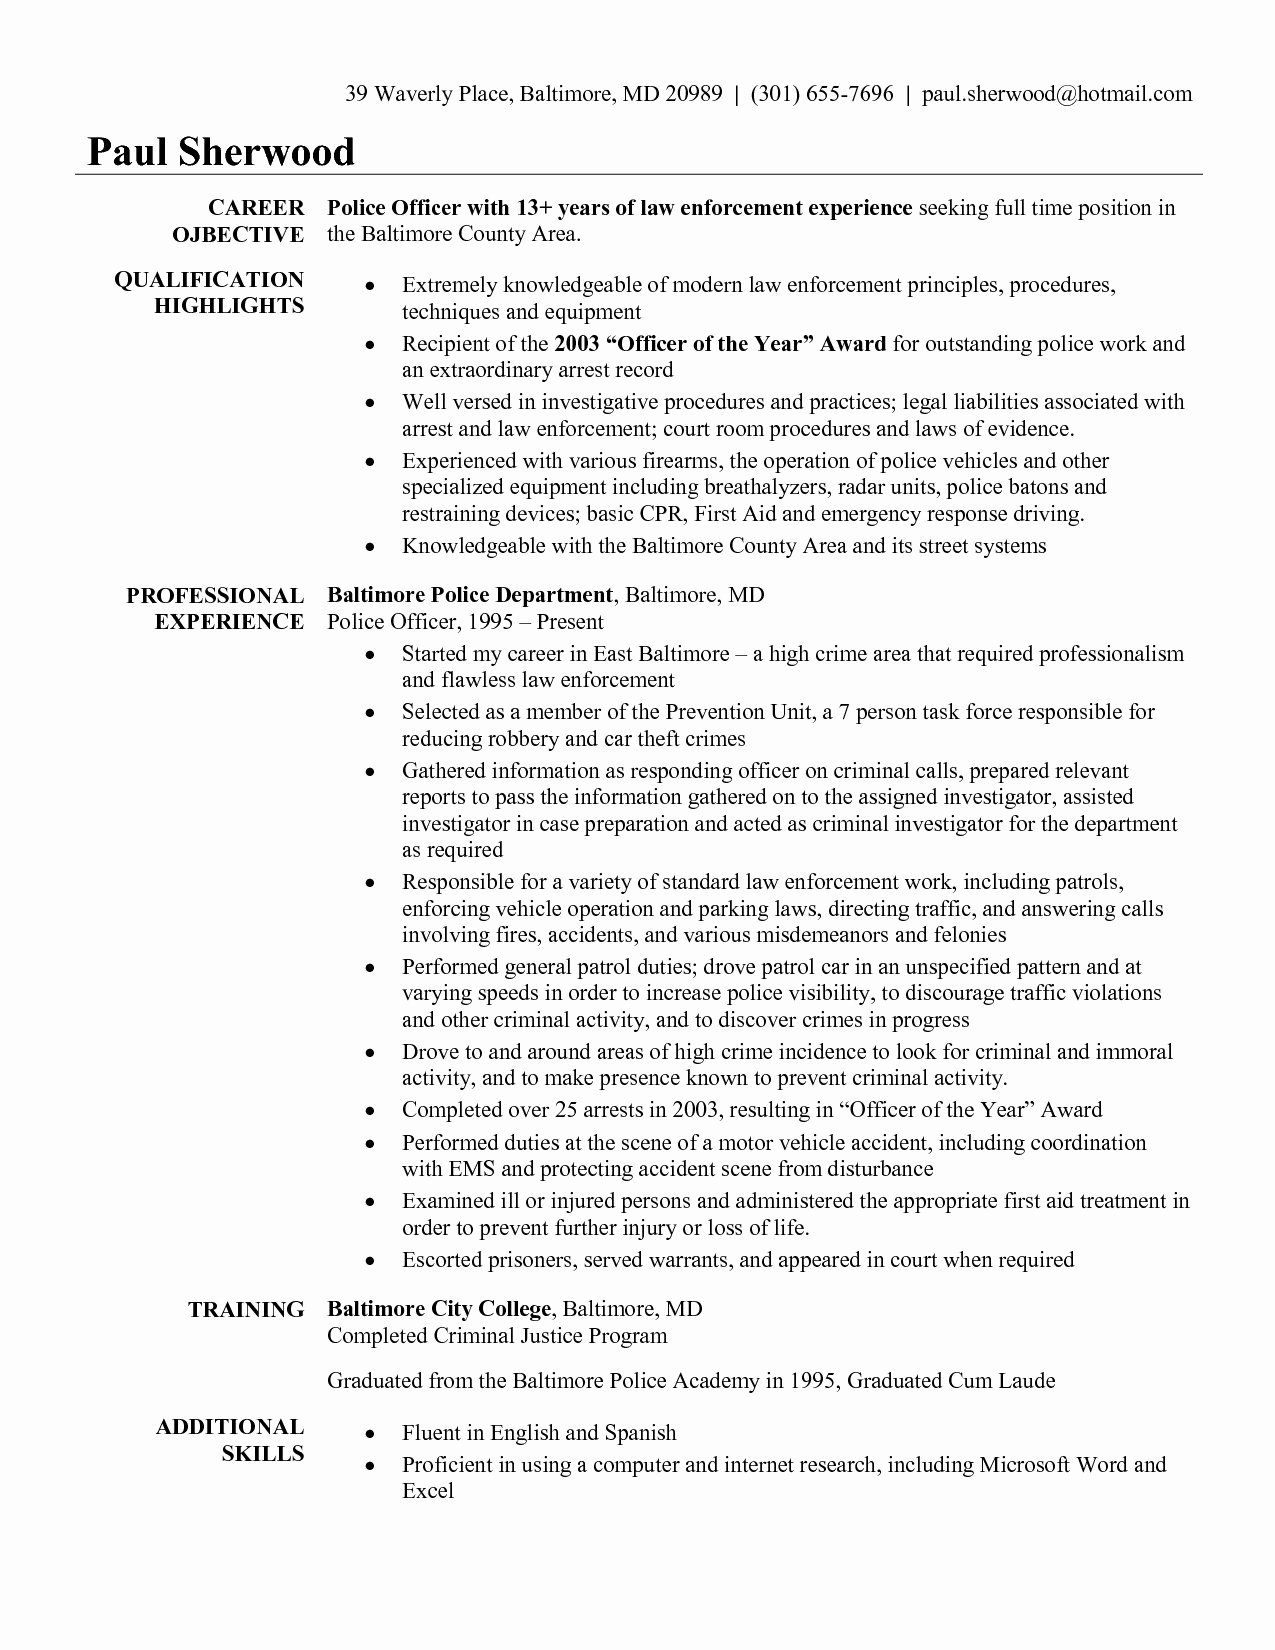 Resume for Police Ficer with No Experience Free